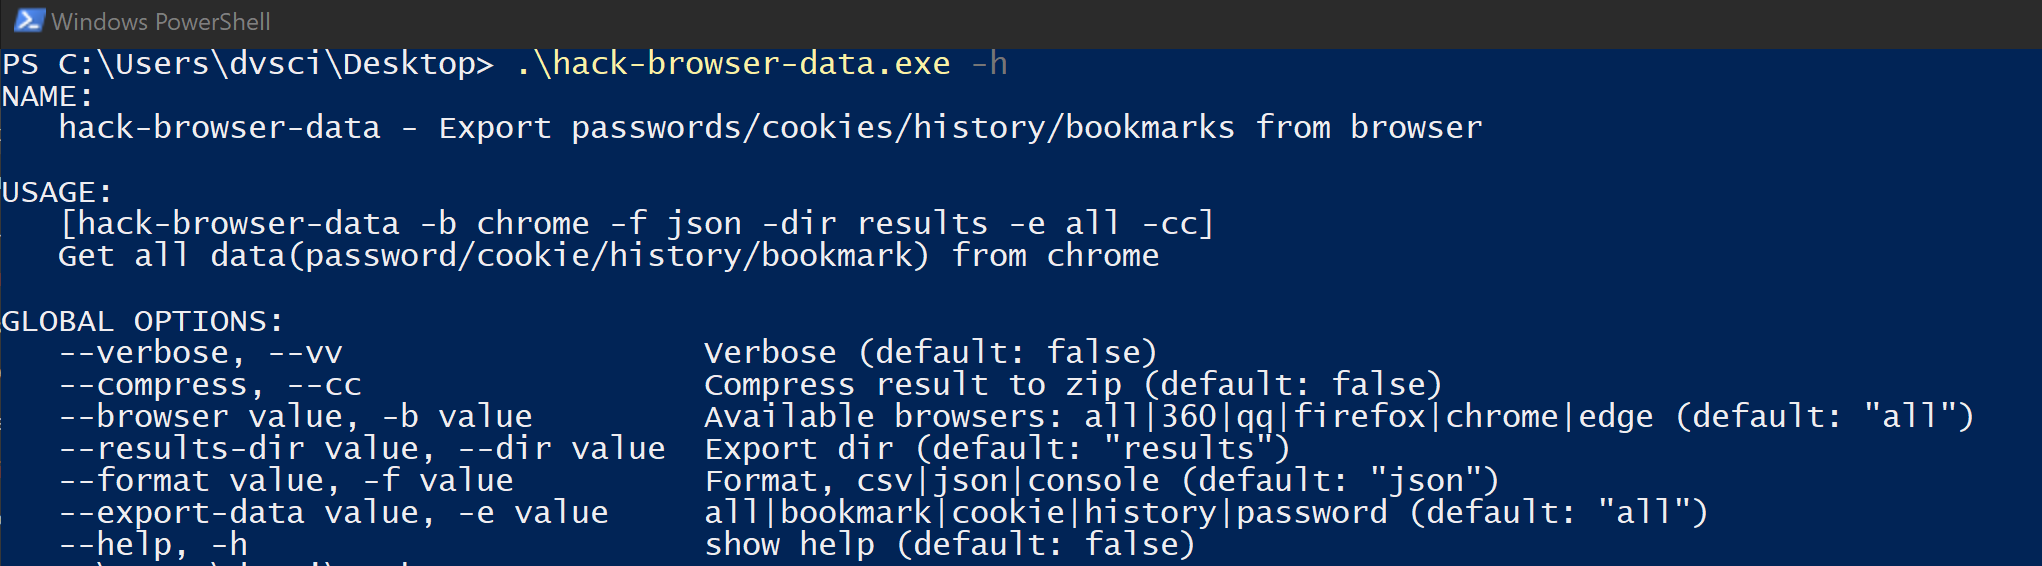 HackBrowserData: Decrypt passwords/cookies/history/bookmarks from the browser